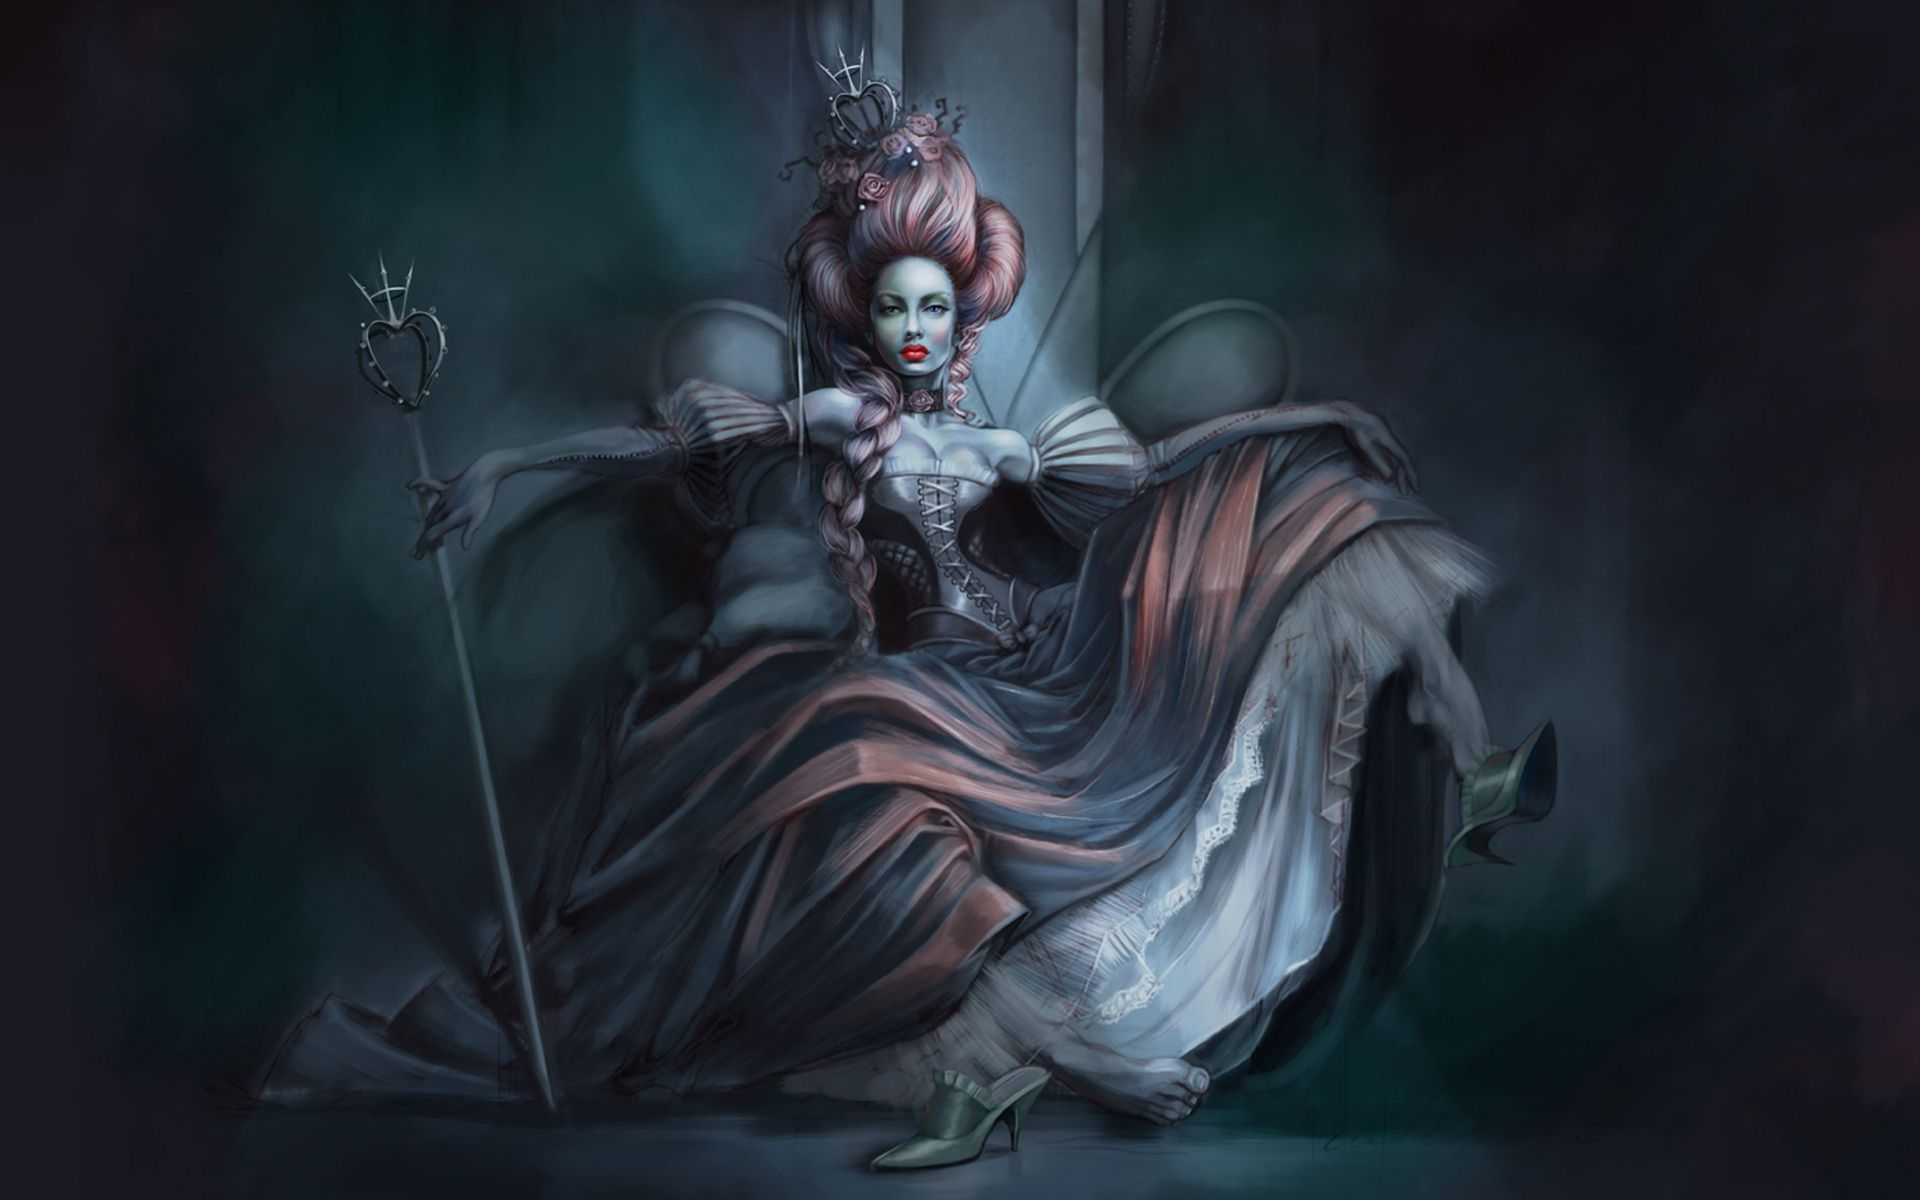 A vampire countess who appears to be